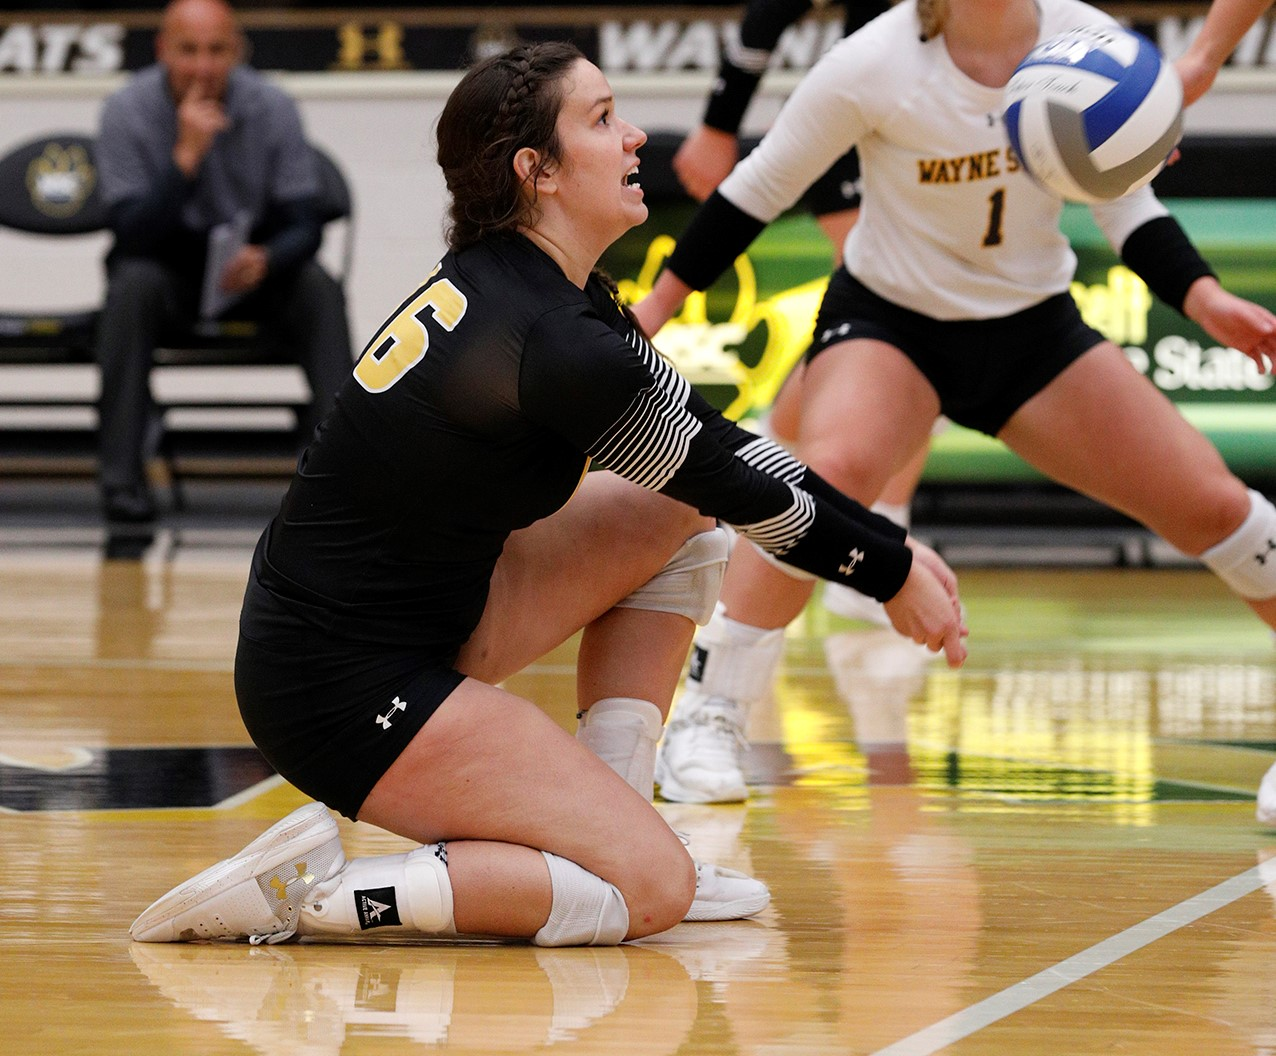 Maddie Duffy is a sophomore defensive specialist for the Wayne State College volleyball team.